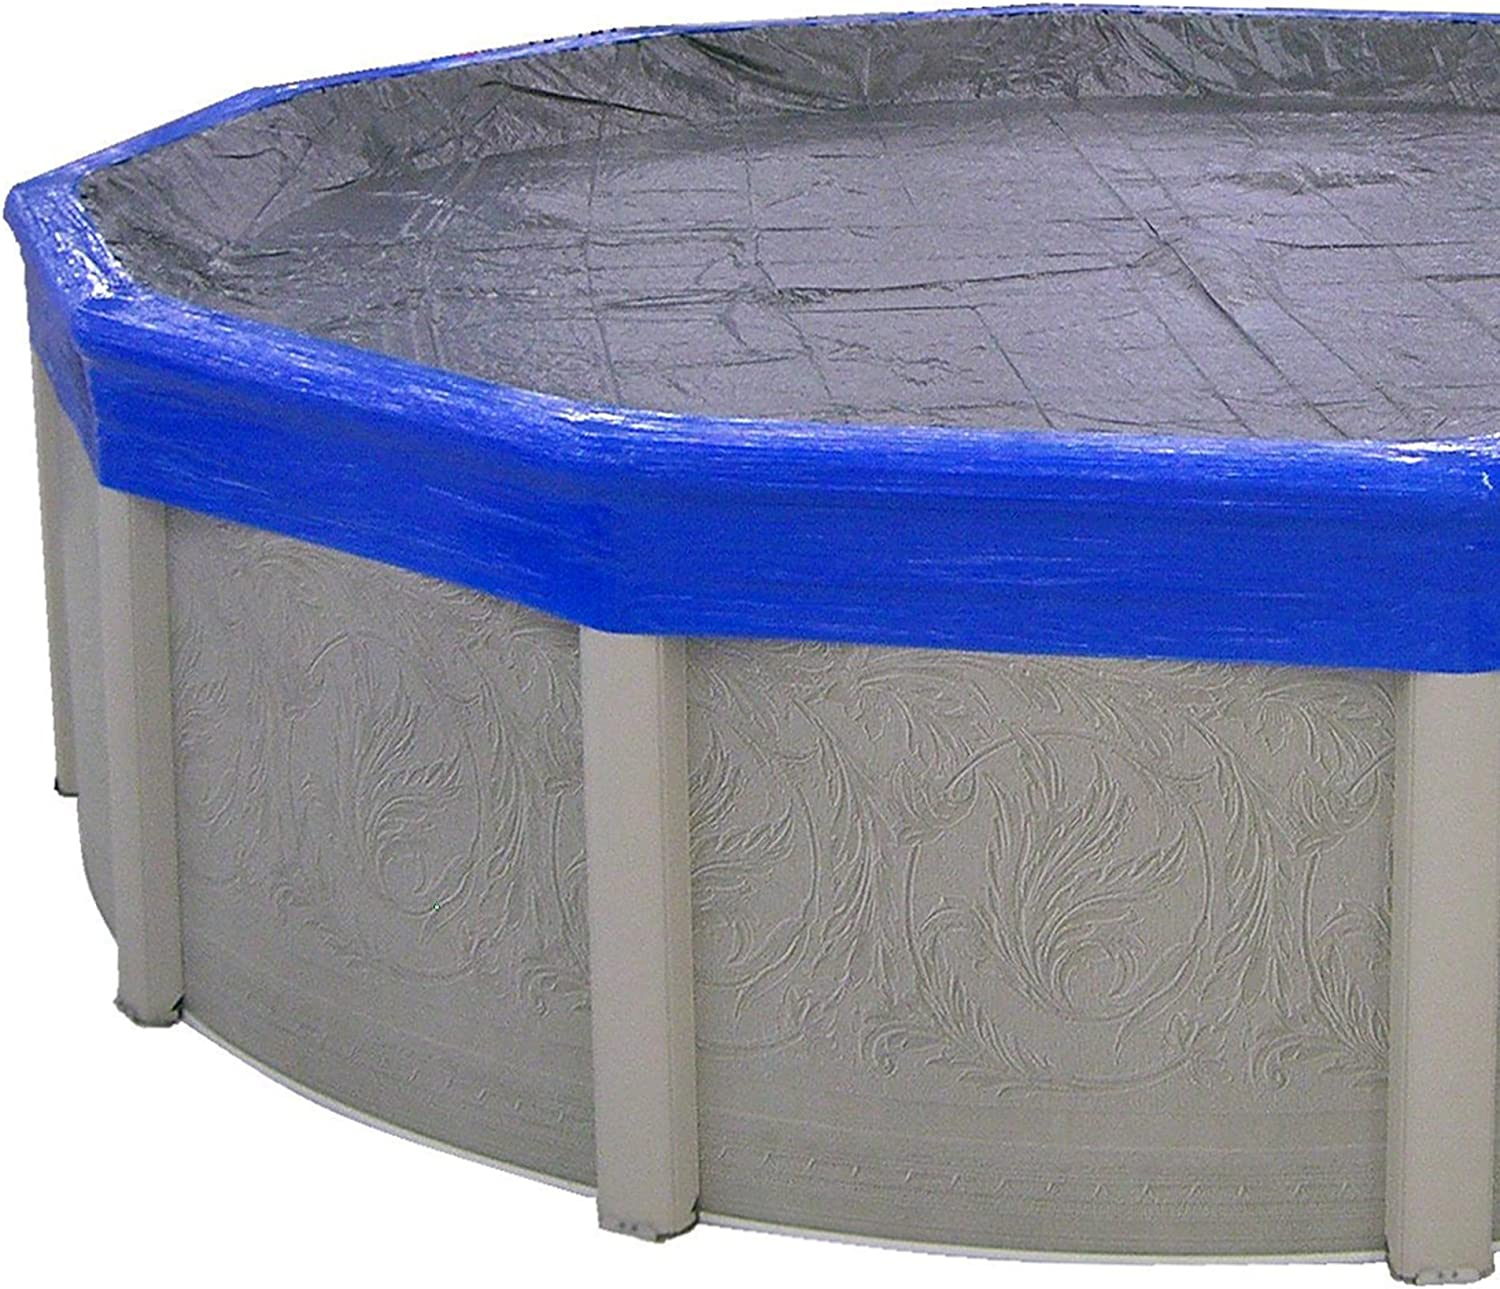 Blue Wave Winter Cover Seal for Above Ground Pool : Garden & Outdoor